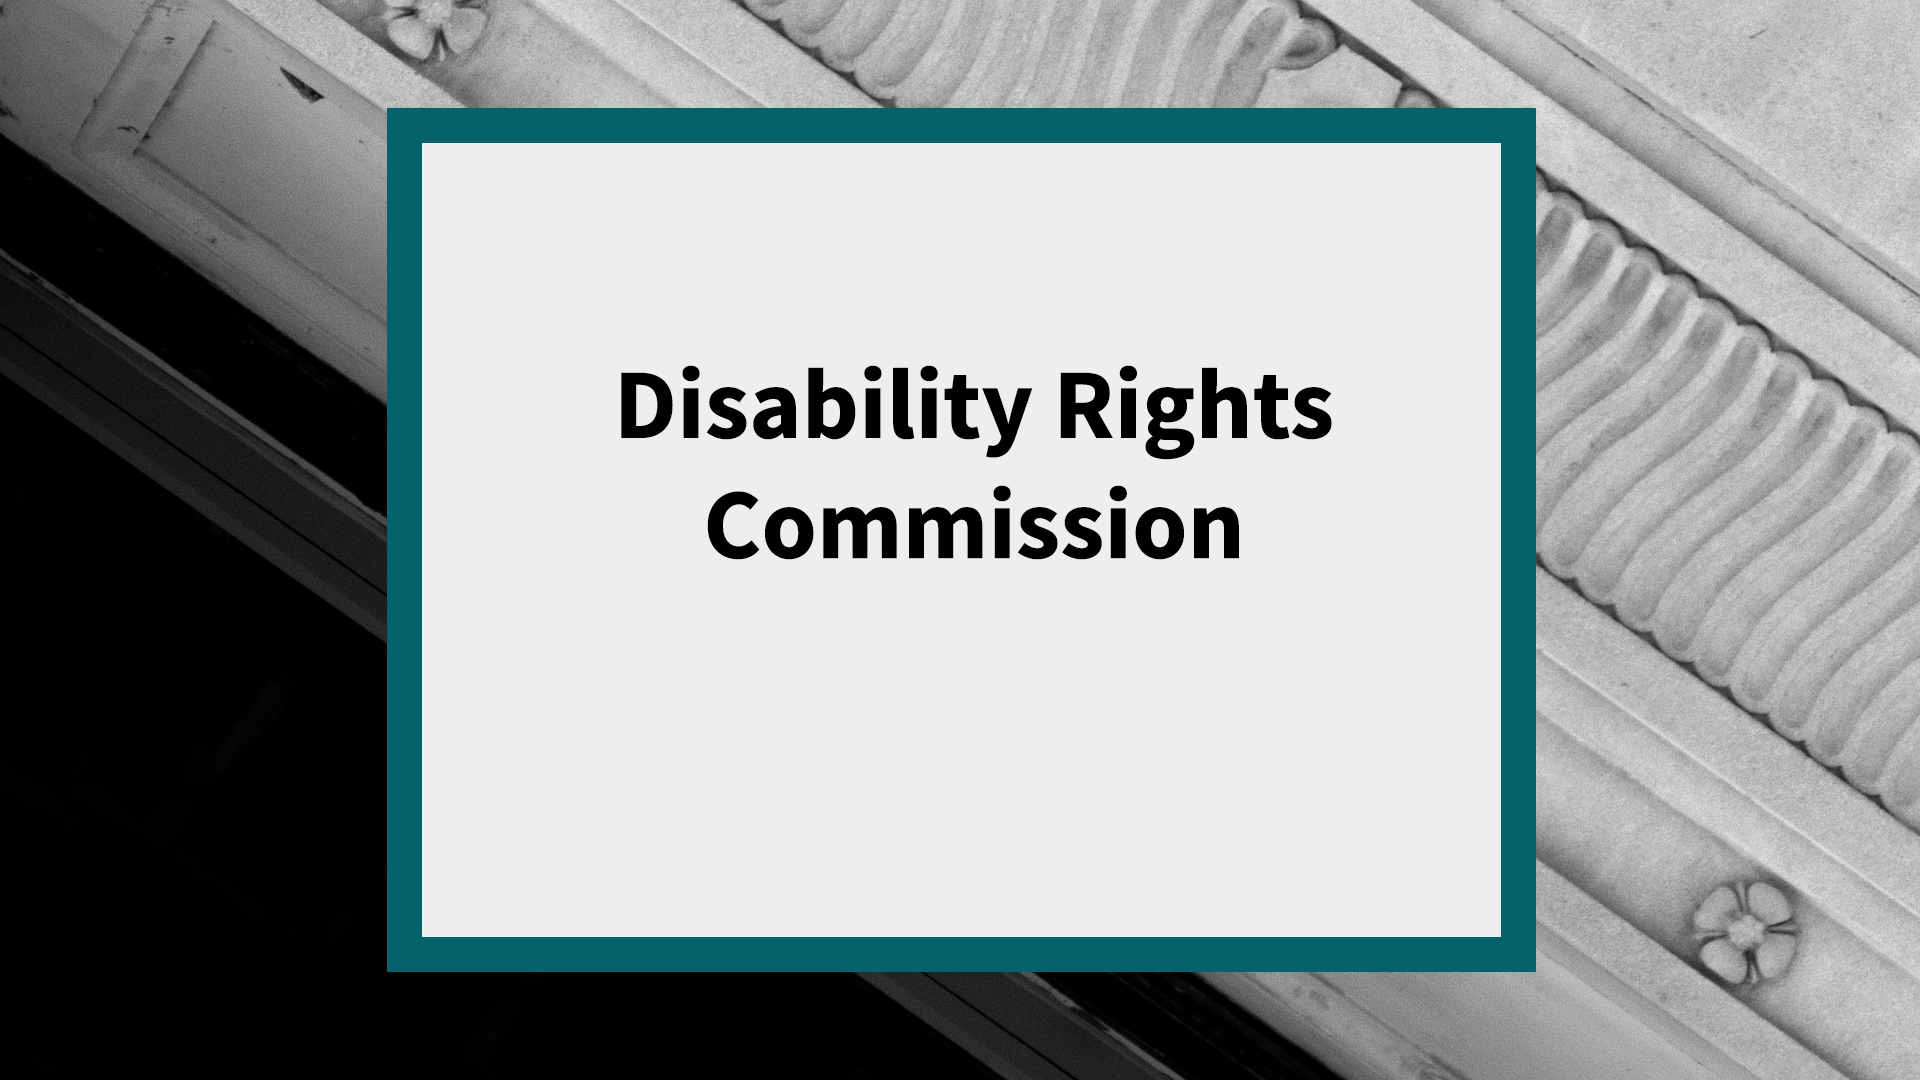 Disability Rights Commission